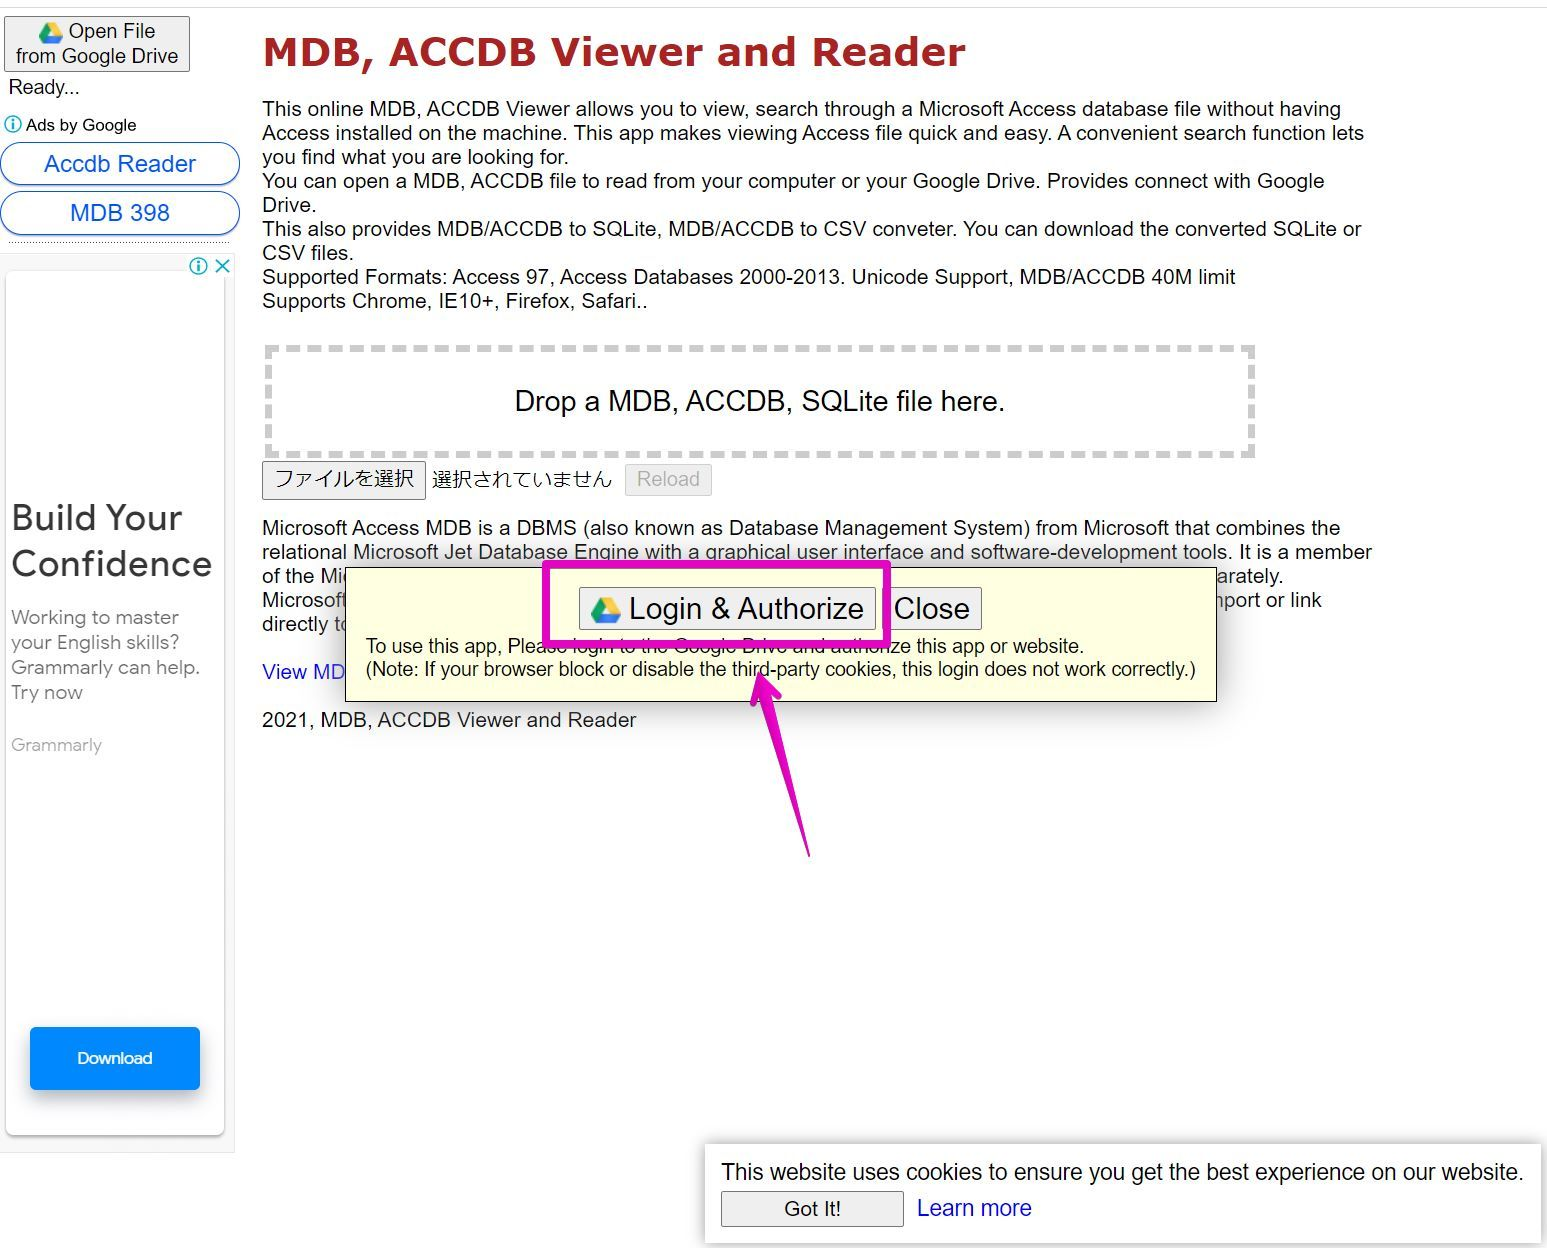 MDB, ACCDB Viewer and Reader